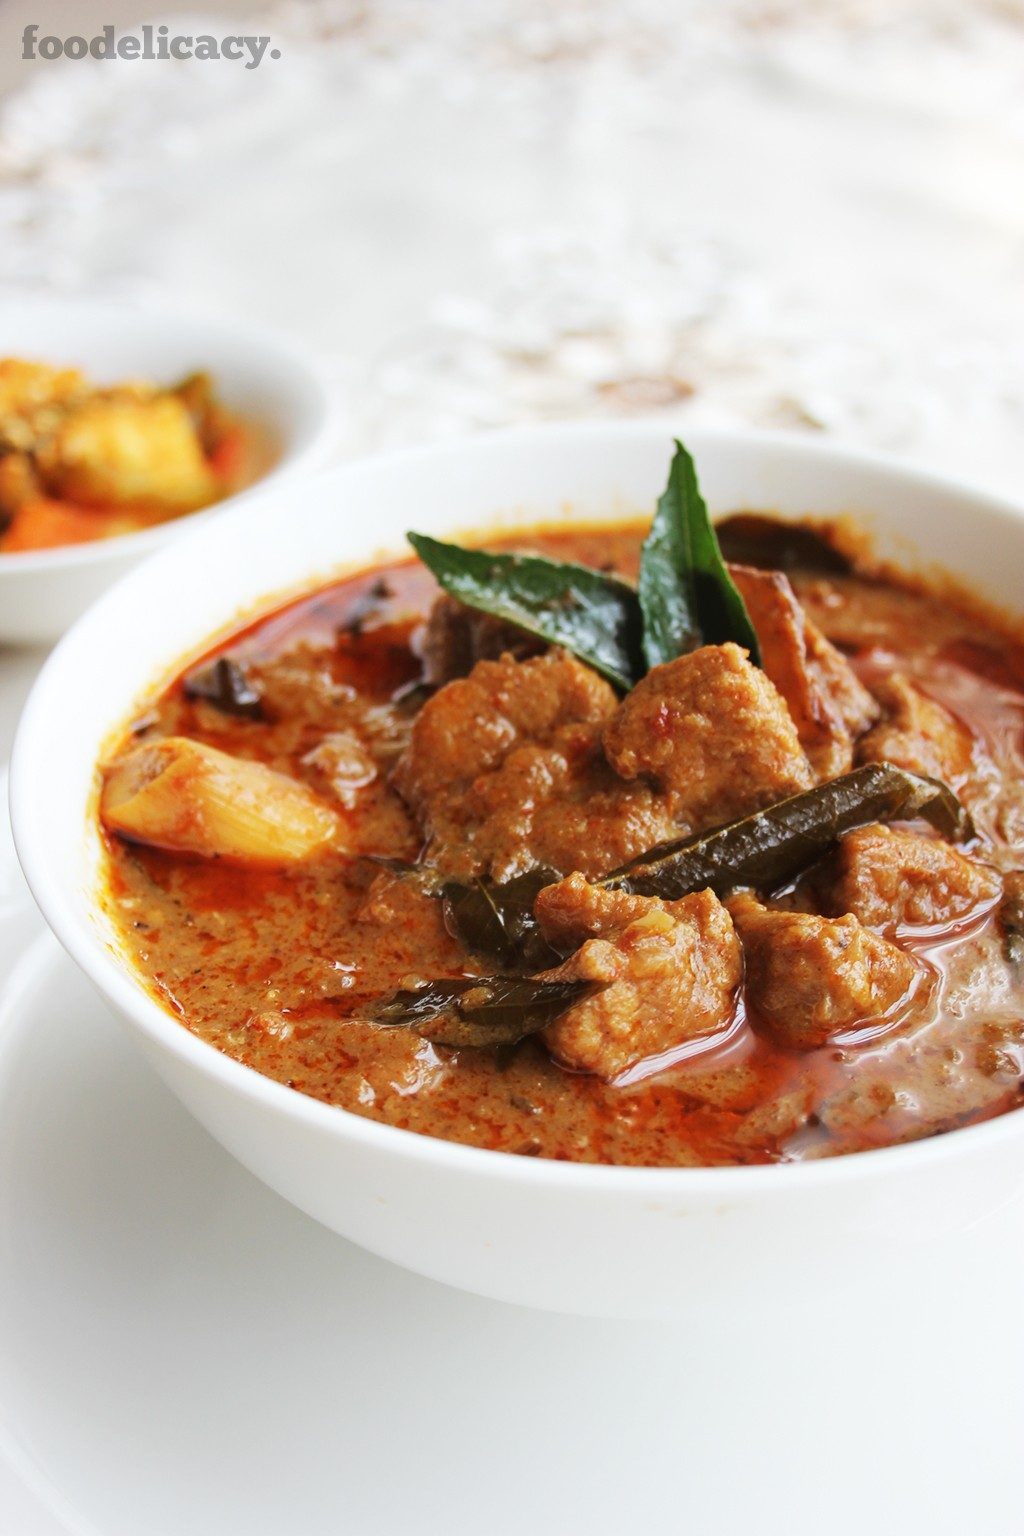 Assam_Pork_Curry_1B